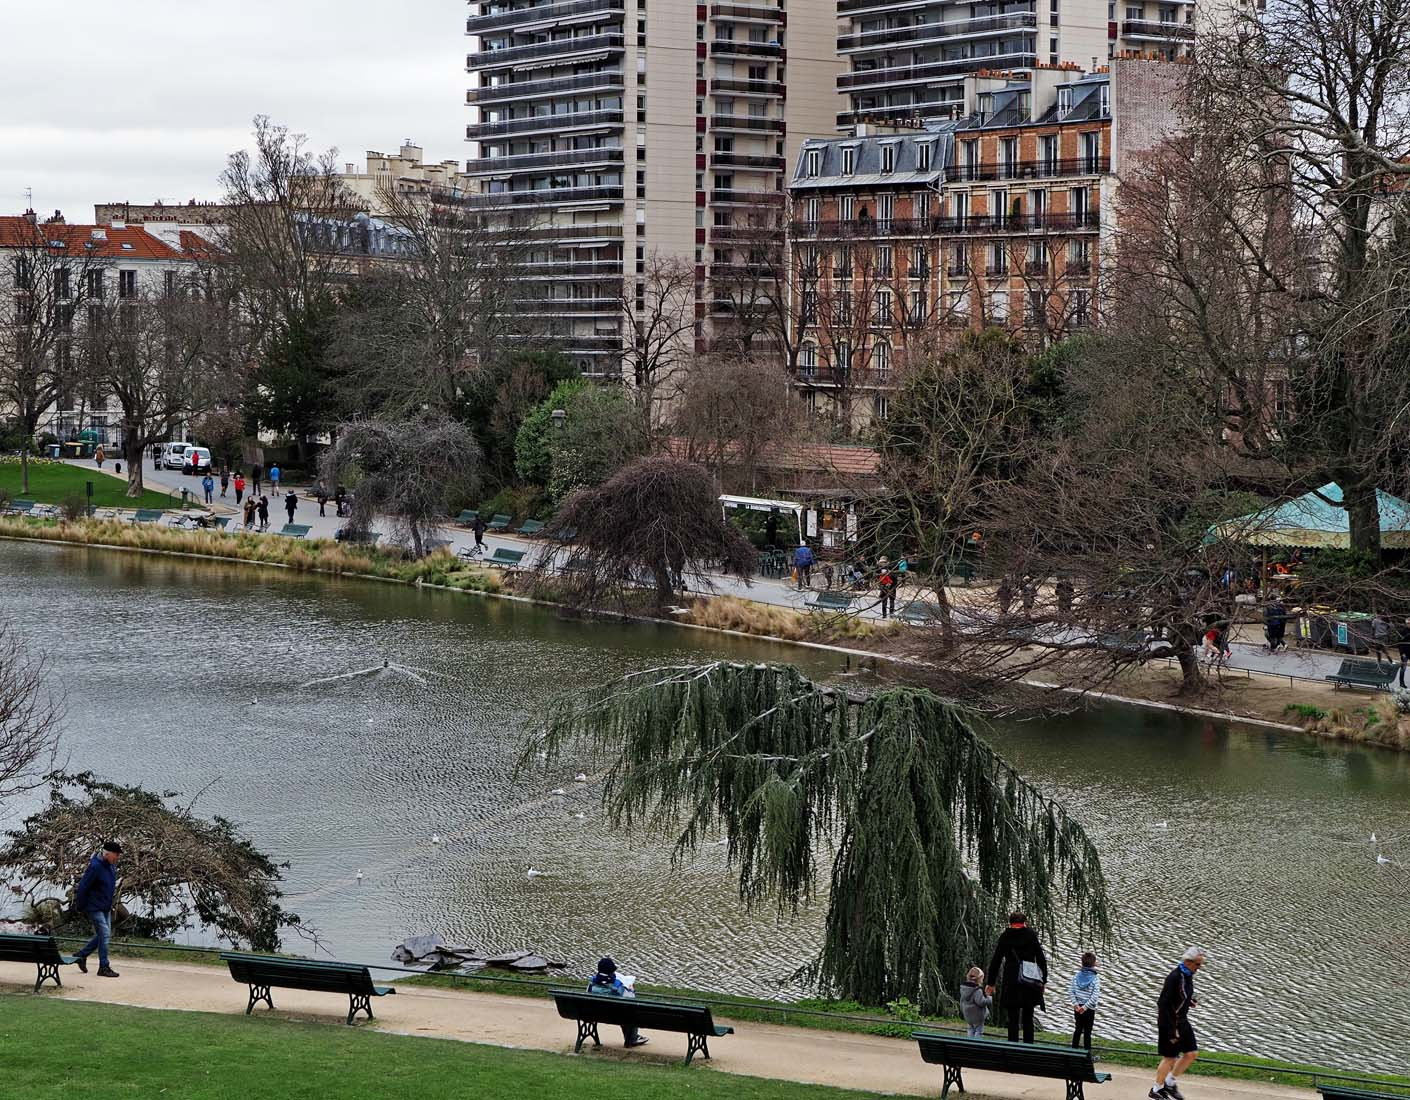 Parc Montsouris; I rented an apartment in the red building.